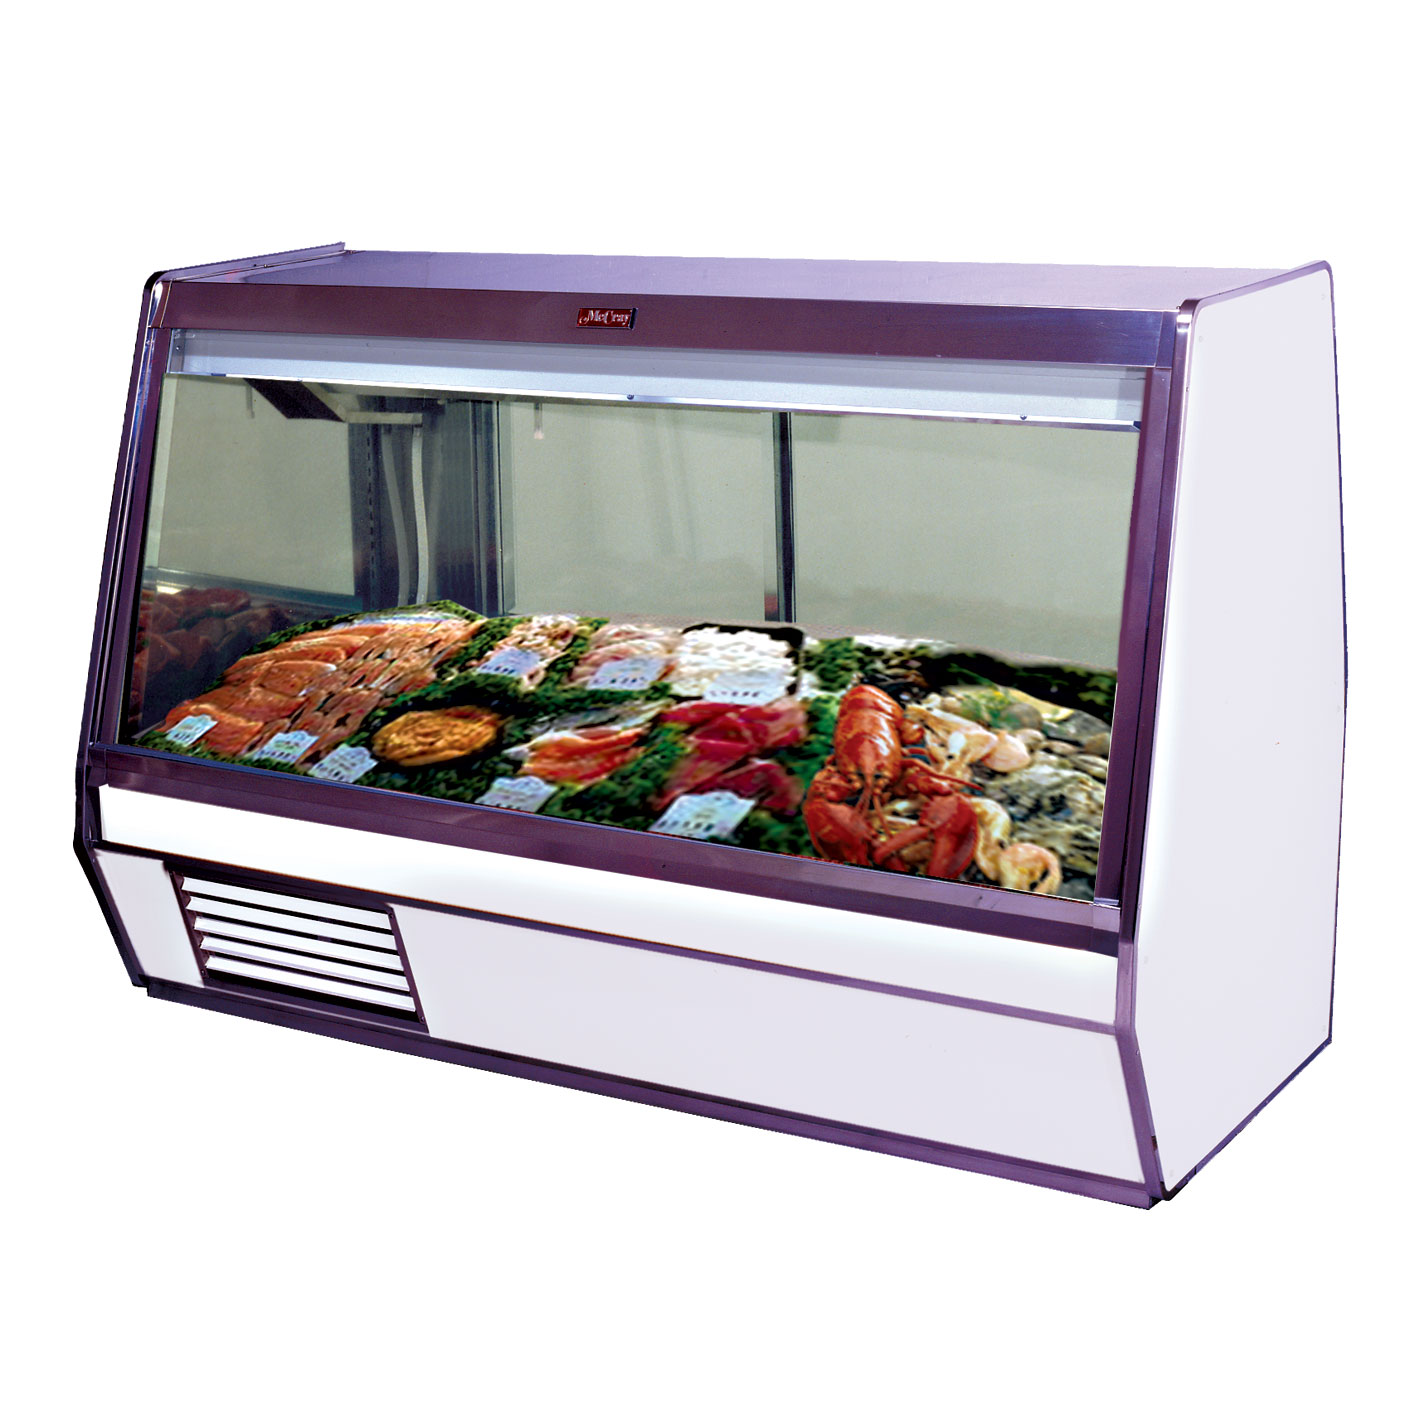 Howard-McCray SC-CFS32E-4-LED display case, deli seafood / poultry